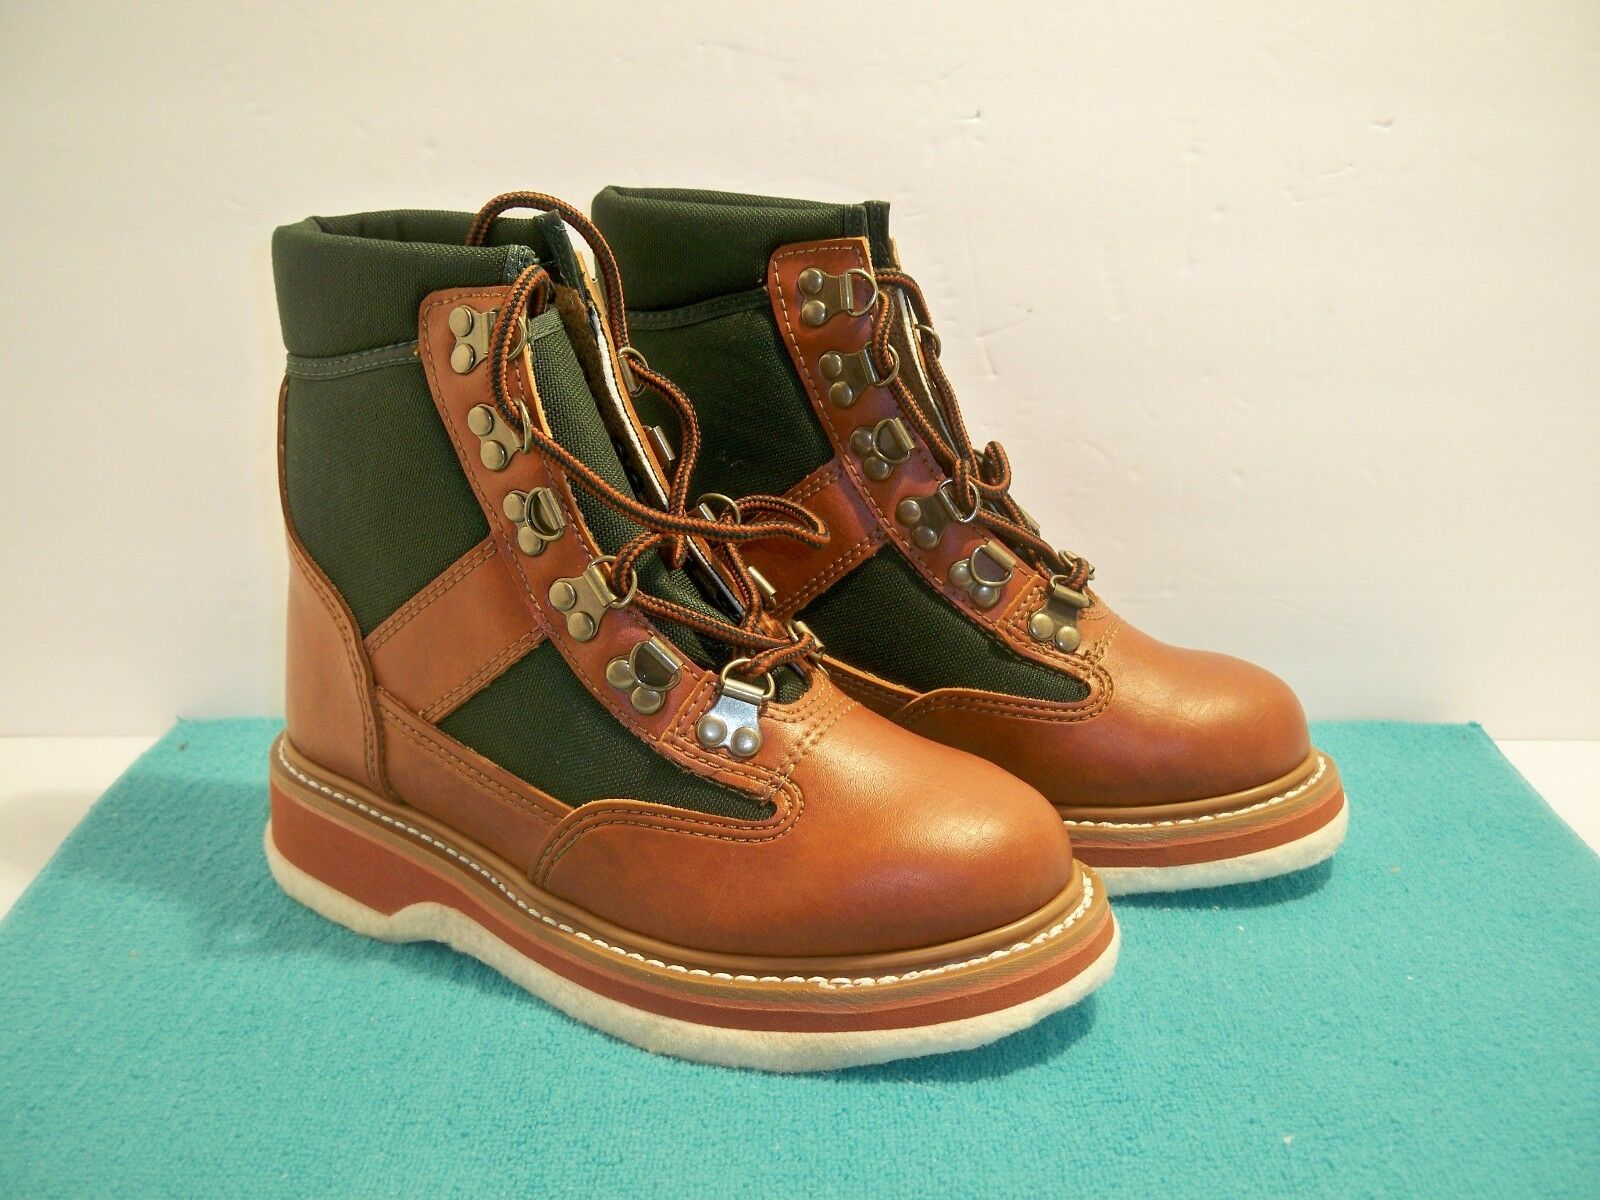 Orvis Battenkill Brogue Green Canvas Leather Fishing Wading Boots Size 5